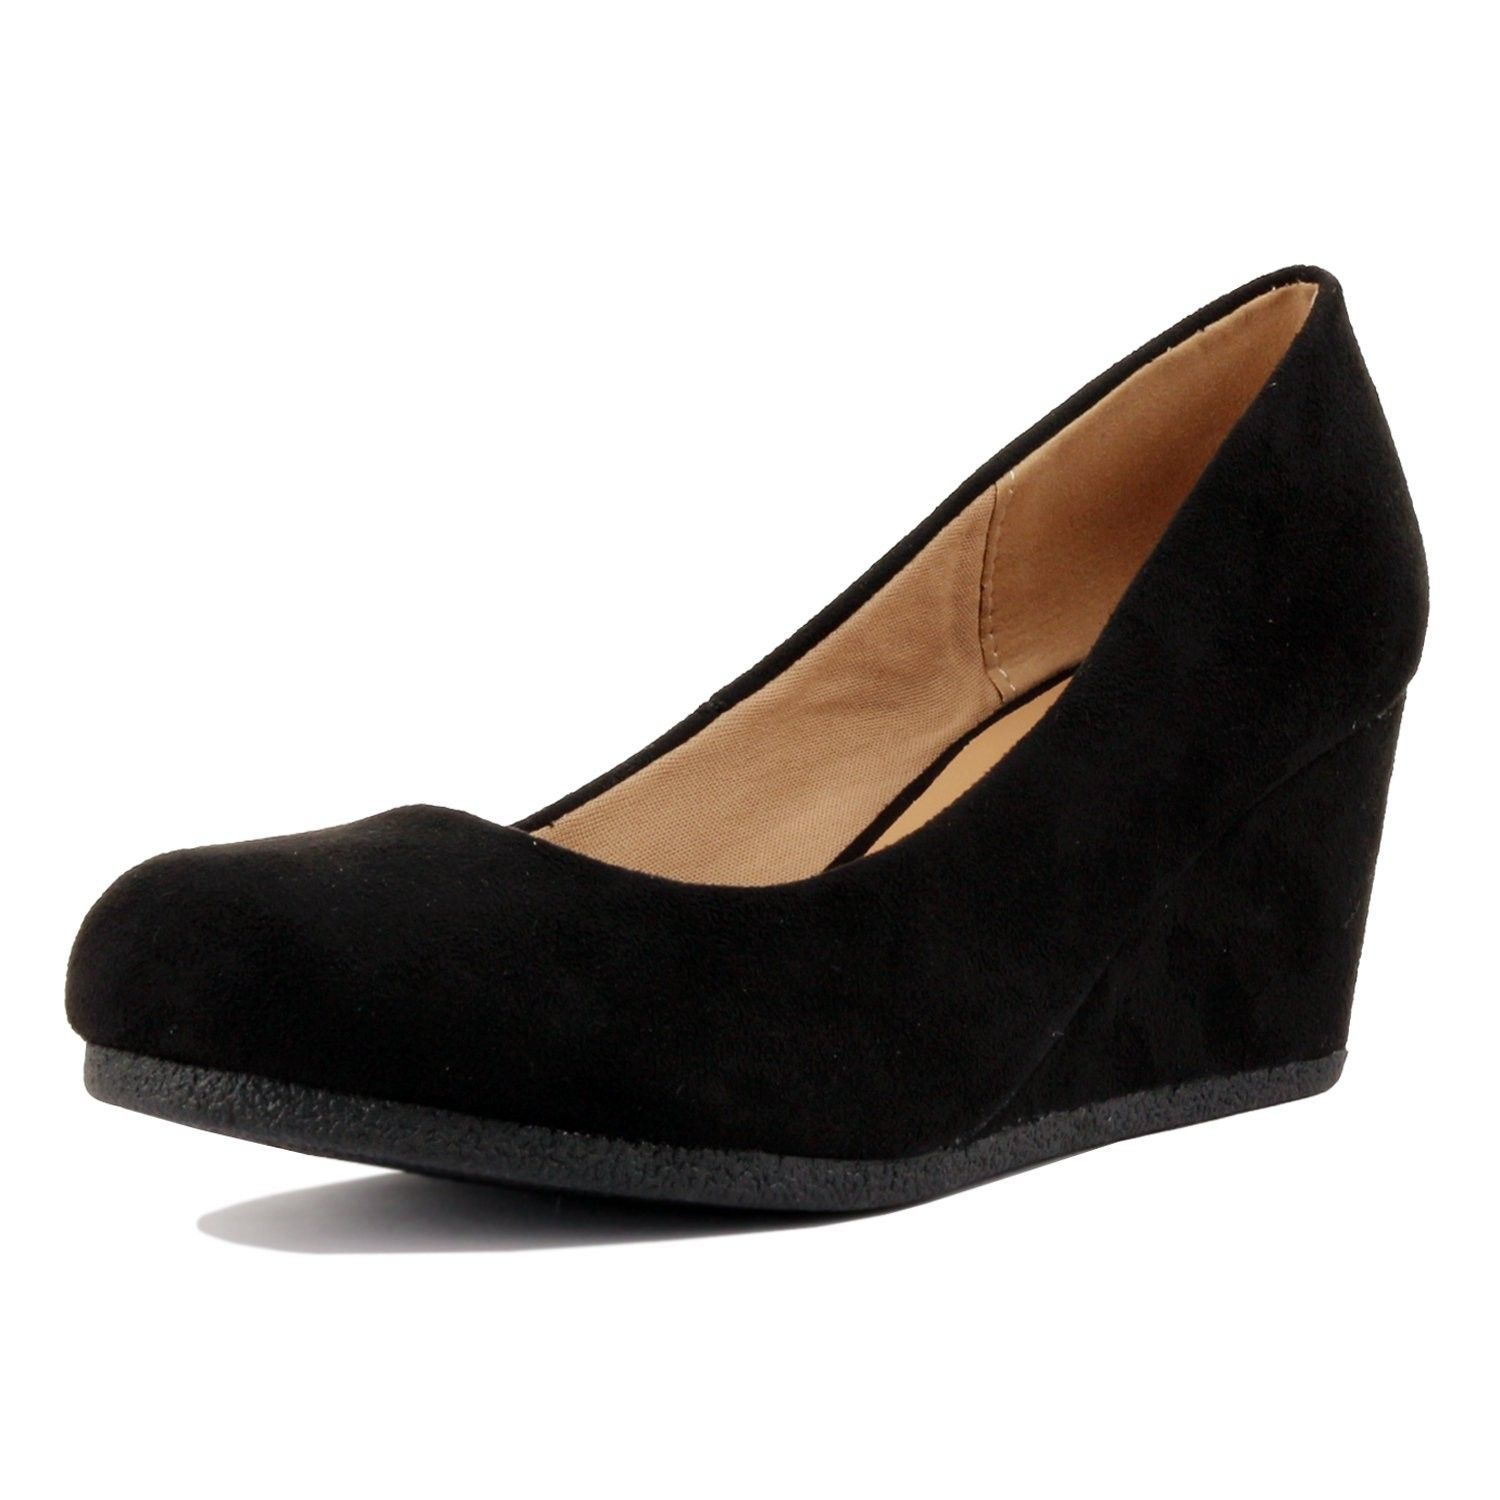 f96f85218 Women's Shoes, Pumps, Classic Office Wedge - Comfort Soft Mid Low Heel  Round Toe Wedge Pumps - Black Suede - C01868CNGGM #Shoes #Pumps #fashion # women # ...